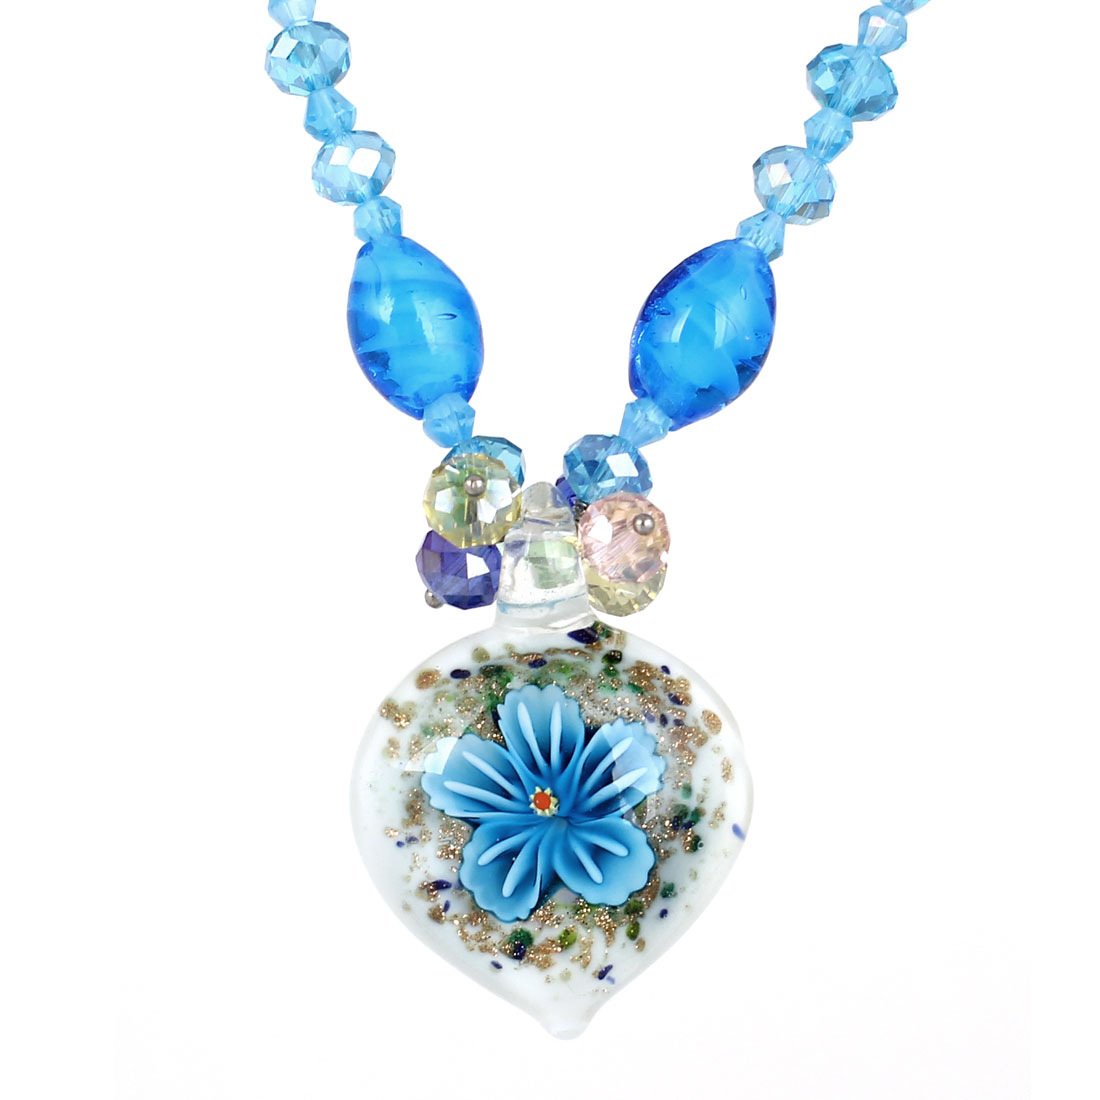 Blue Faceted Rhinestone Inlaid Neck String Clear White Heart Glass Flower Press Pendant Necklace for Lady